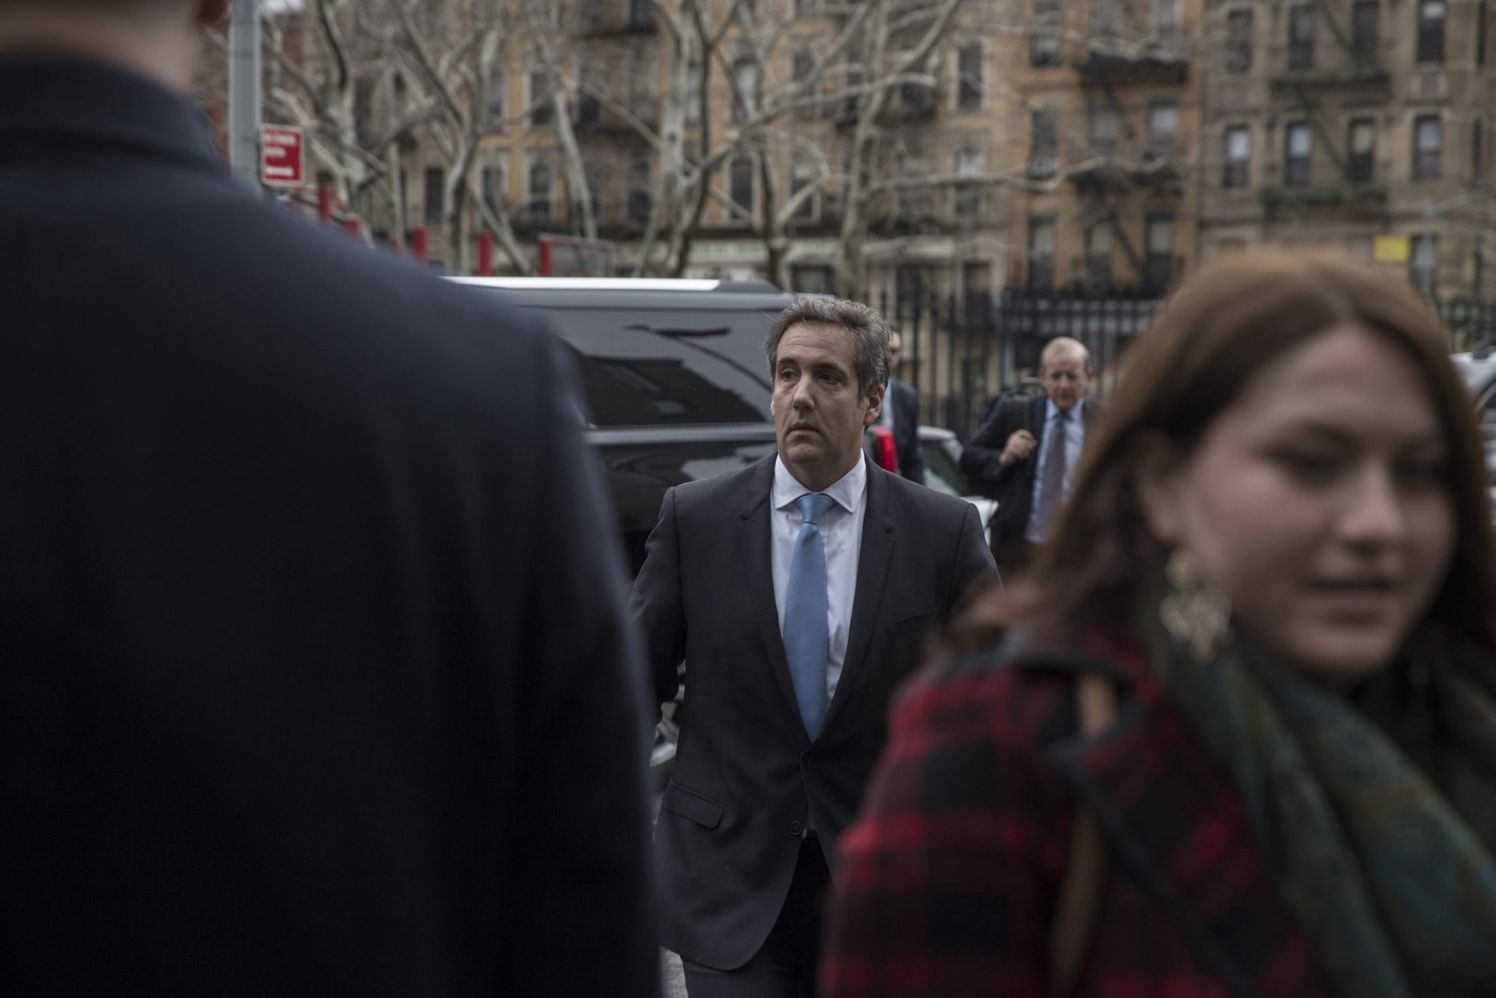 Michael Cohen, personal lawyer to U.S. President Donald Trump, arrives at Federal Court in New York, U.S., on Monday, April 16, 2018. Cohen says he gave legal advice to three clients in the past year, including the president and Elliott Broidy, former deputy finance chairman of the Republican National Committee. Photographer: Victor J. Blue/Bloomberg